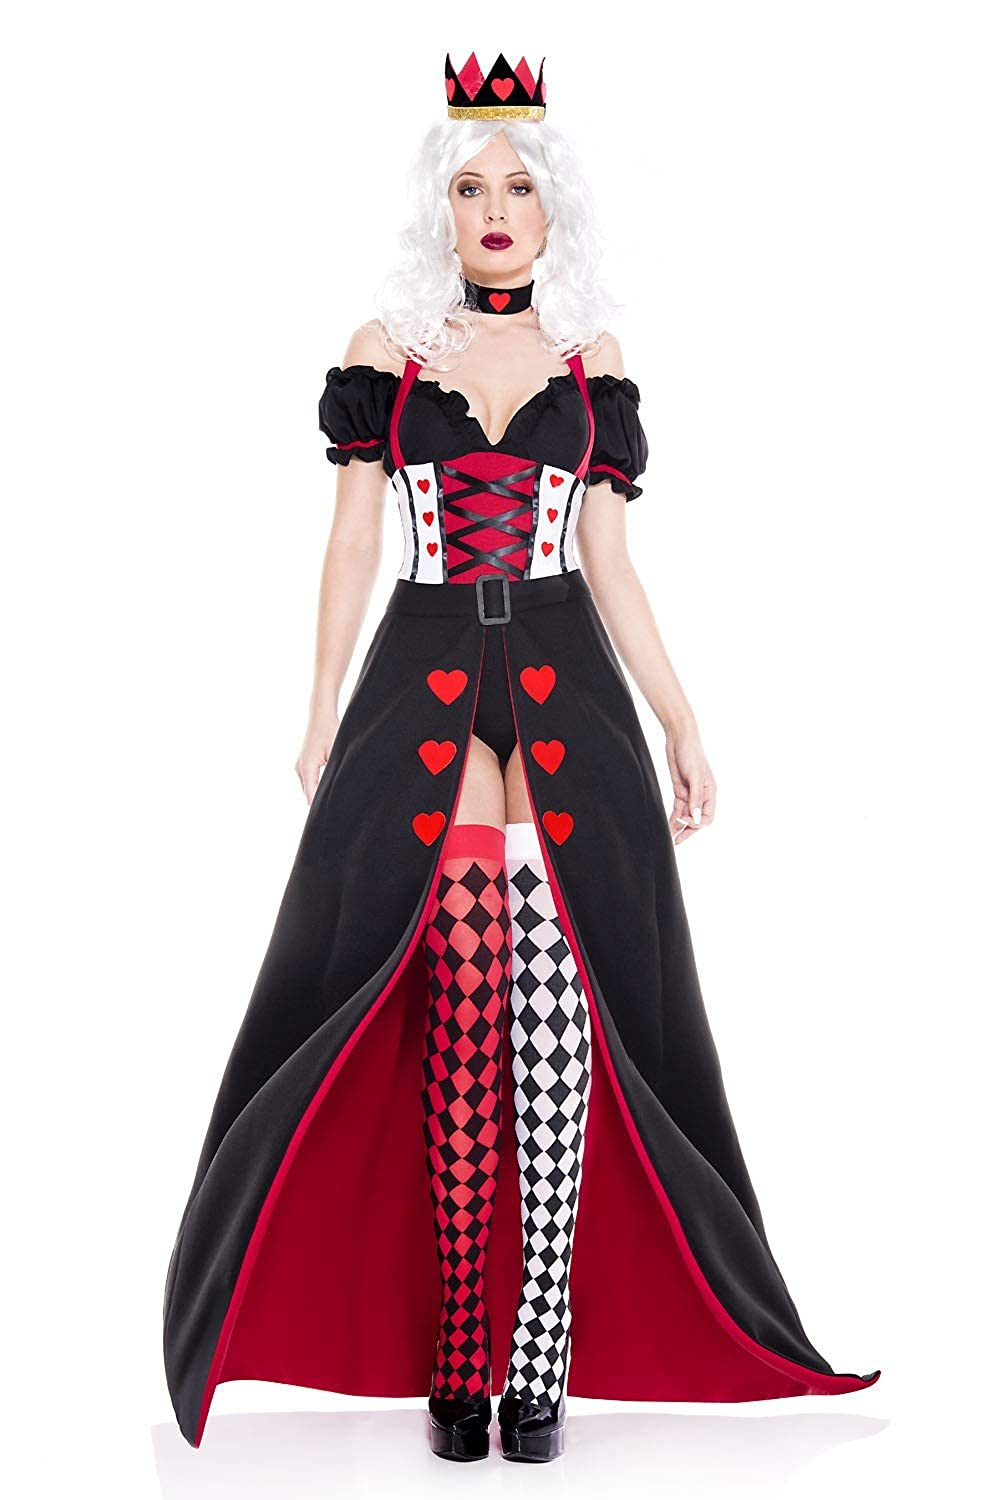 Ladies Enchanting Royal Queen of Hearts 5-Piece Open Front Dress Costume Set (Size XS - XL) - DeluxeAdultCostumes.com